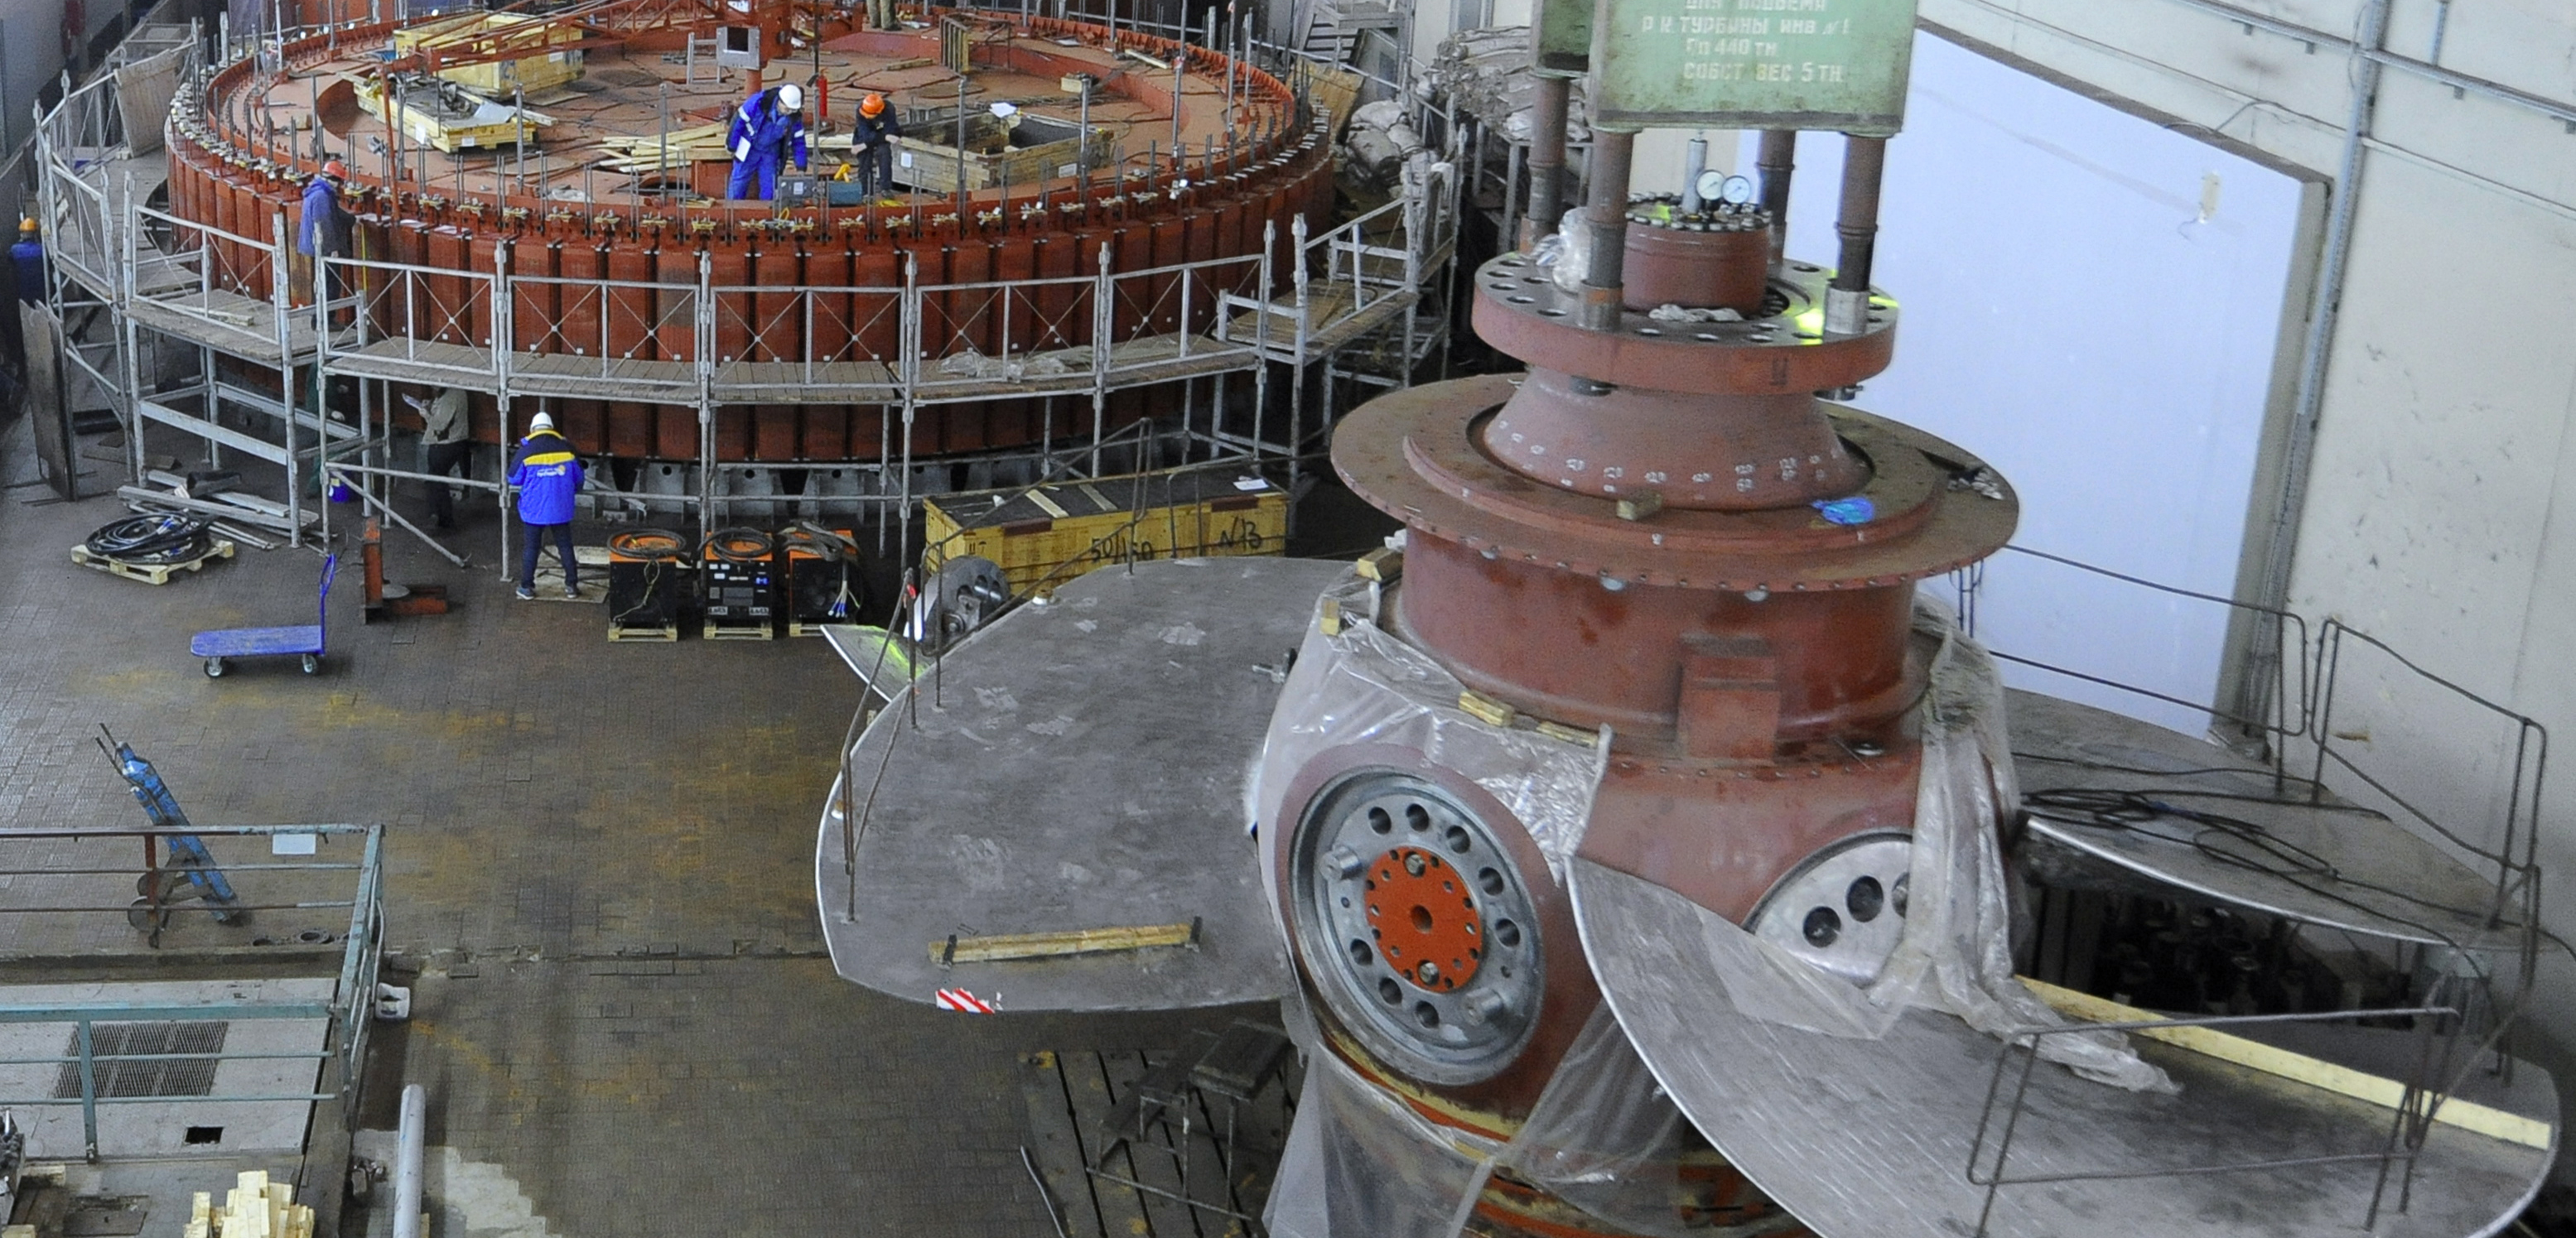 Workers look down at the massive blades of the turbine at the Volga Hydroelectric Power Station in Russia. Photo byDmitry Rogulin/ITAR-TASS Photo/Corbis